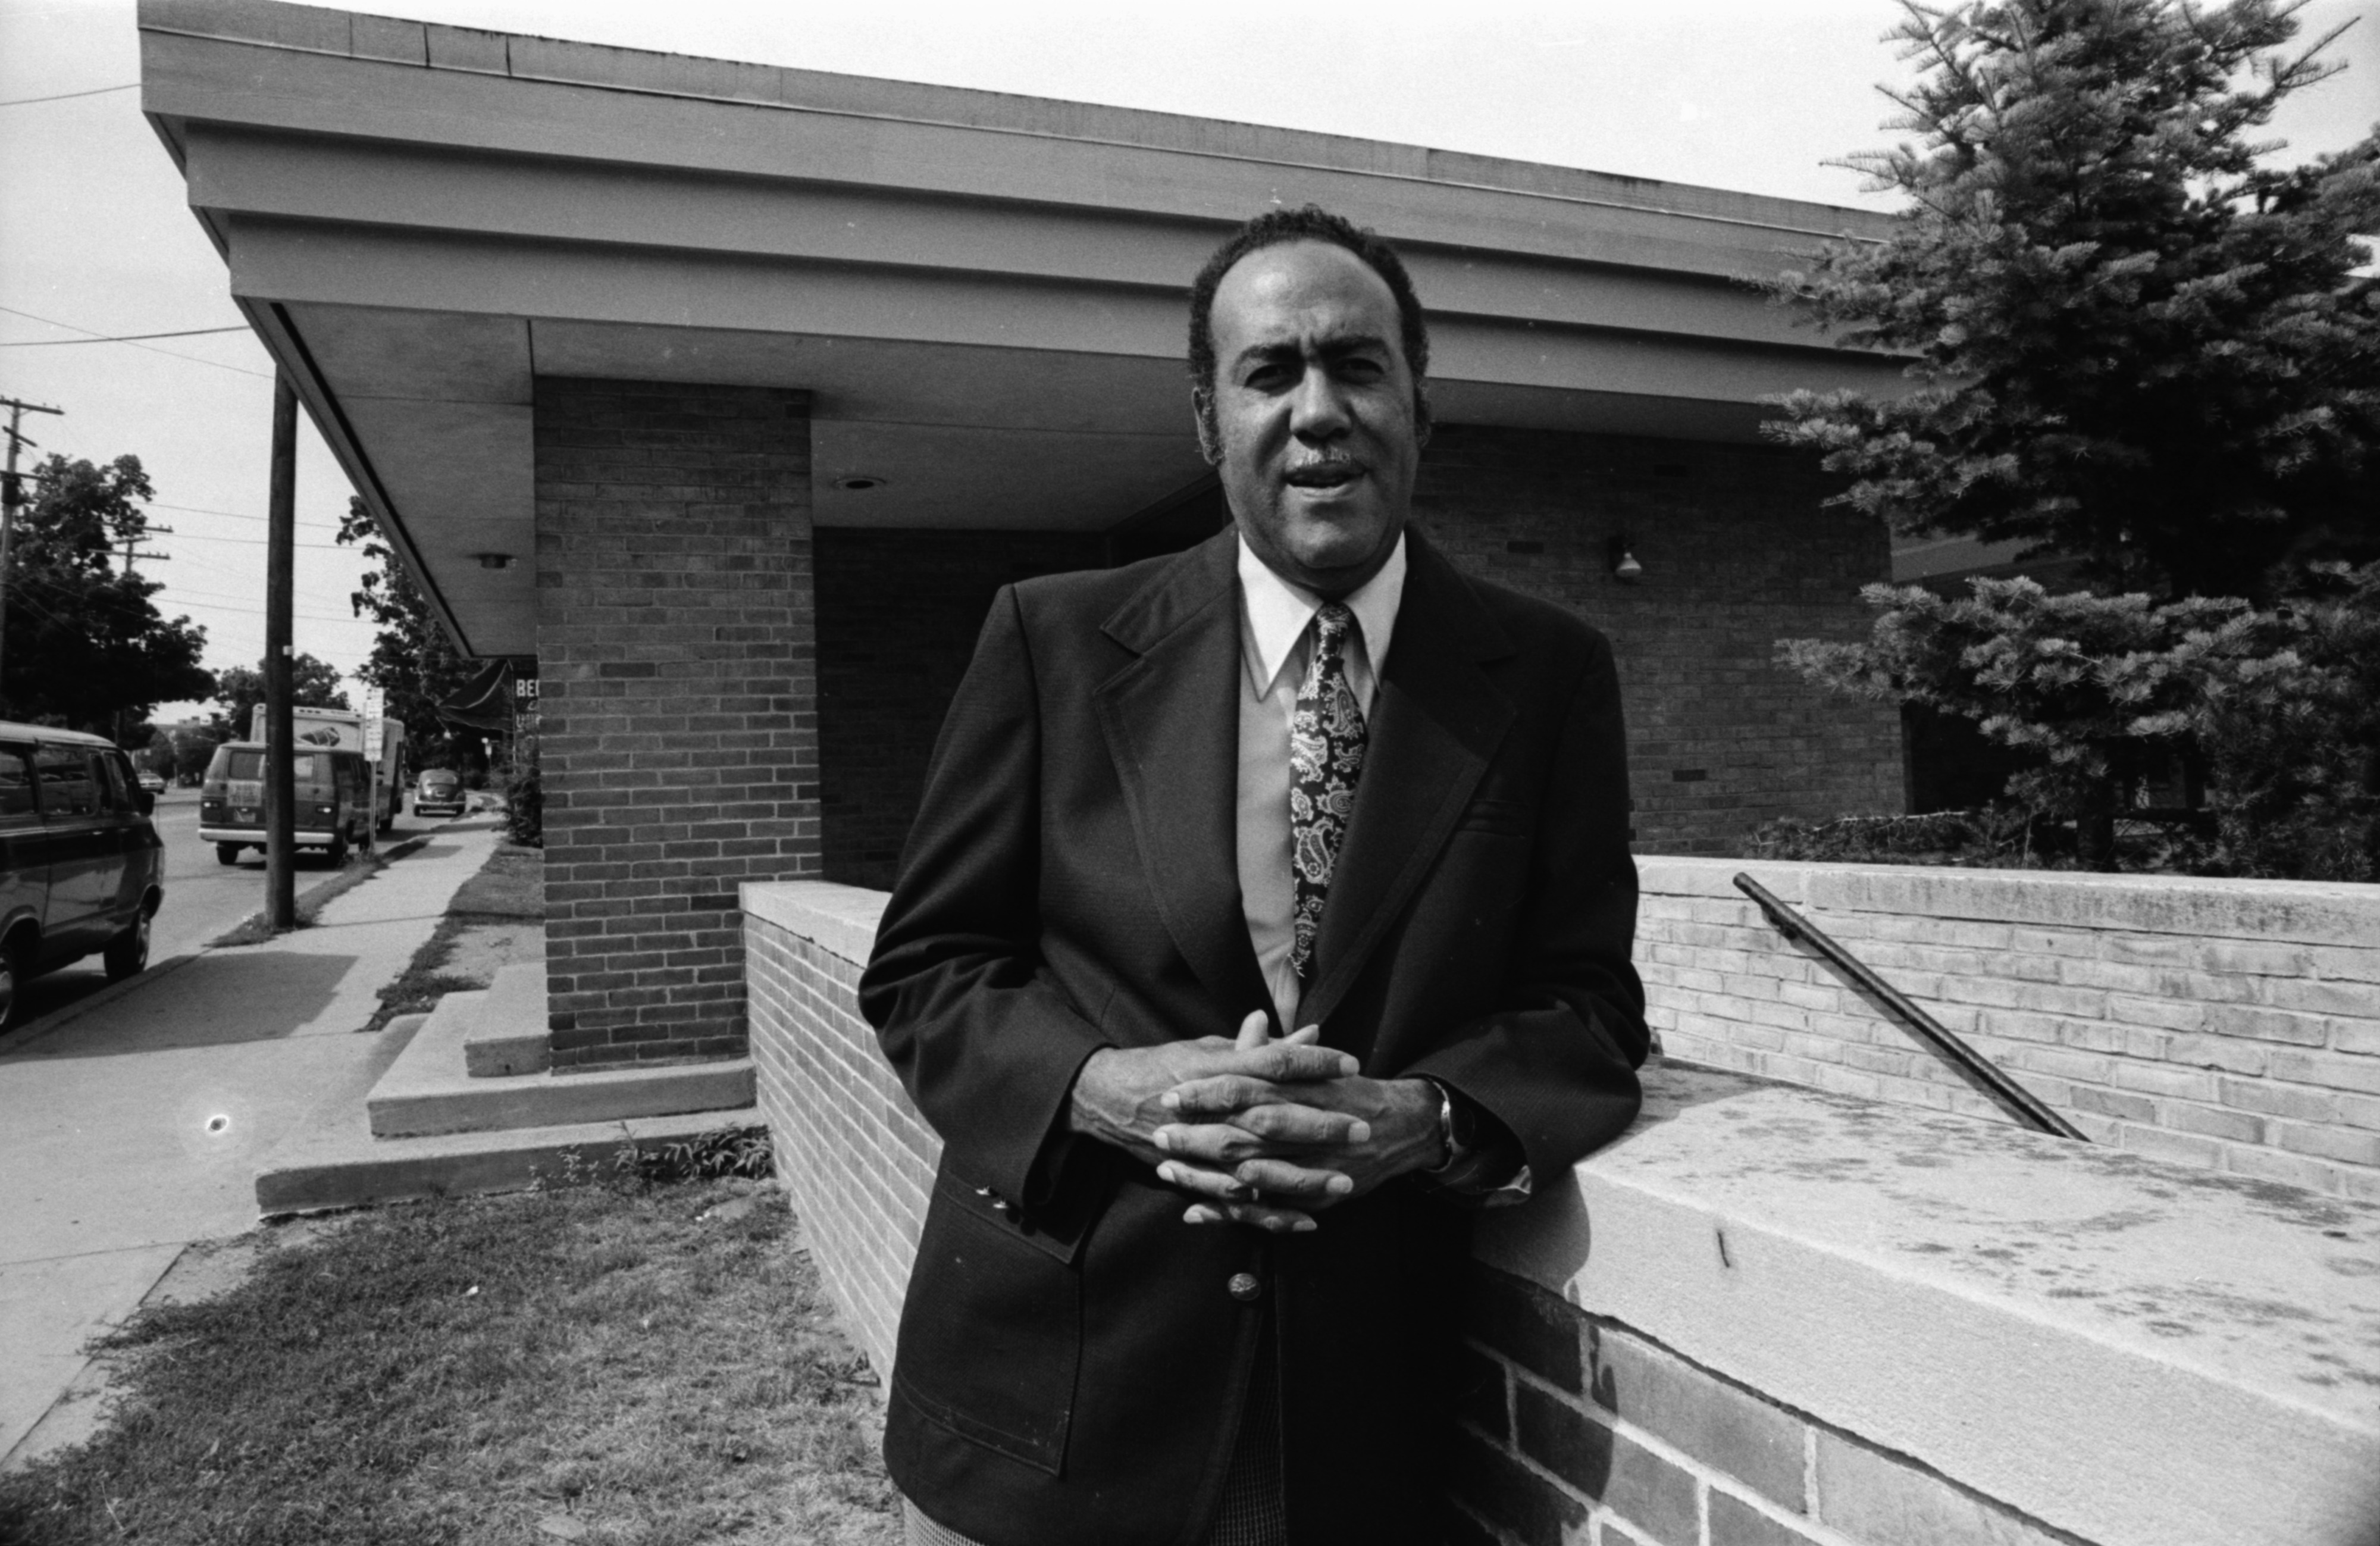 Walter Hill, Director of the Ann Arbor Community Center, Outside the North Main Street Building, July 1978 image